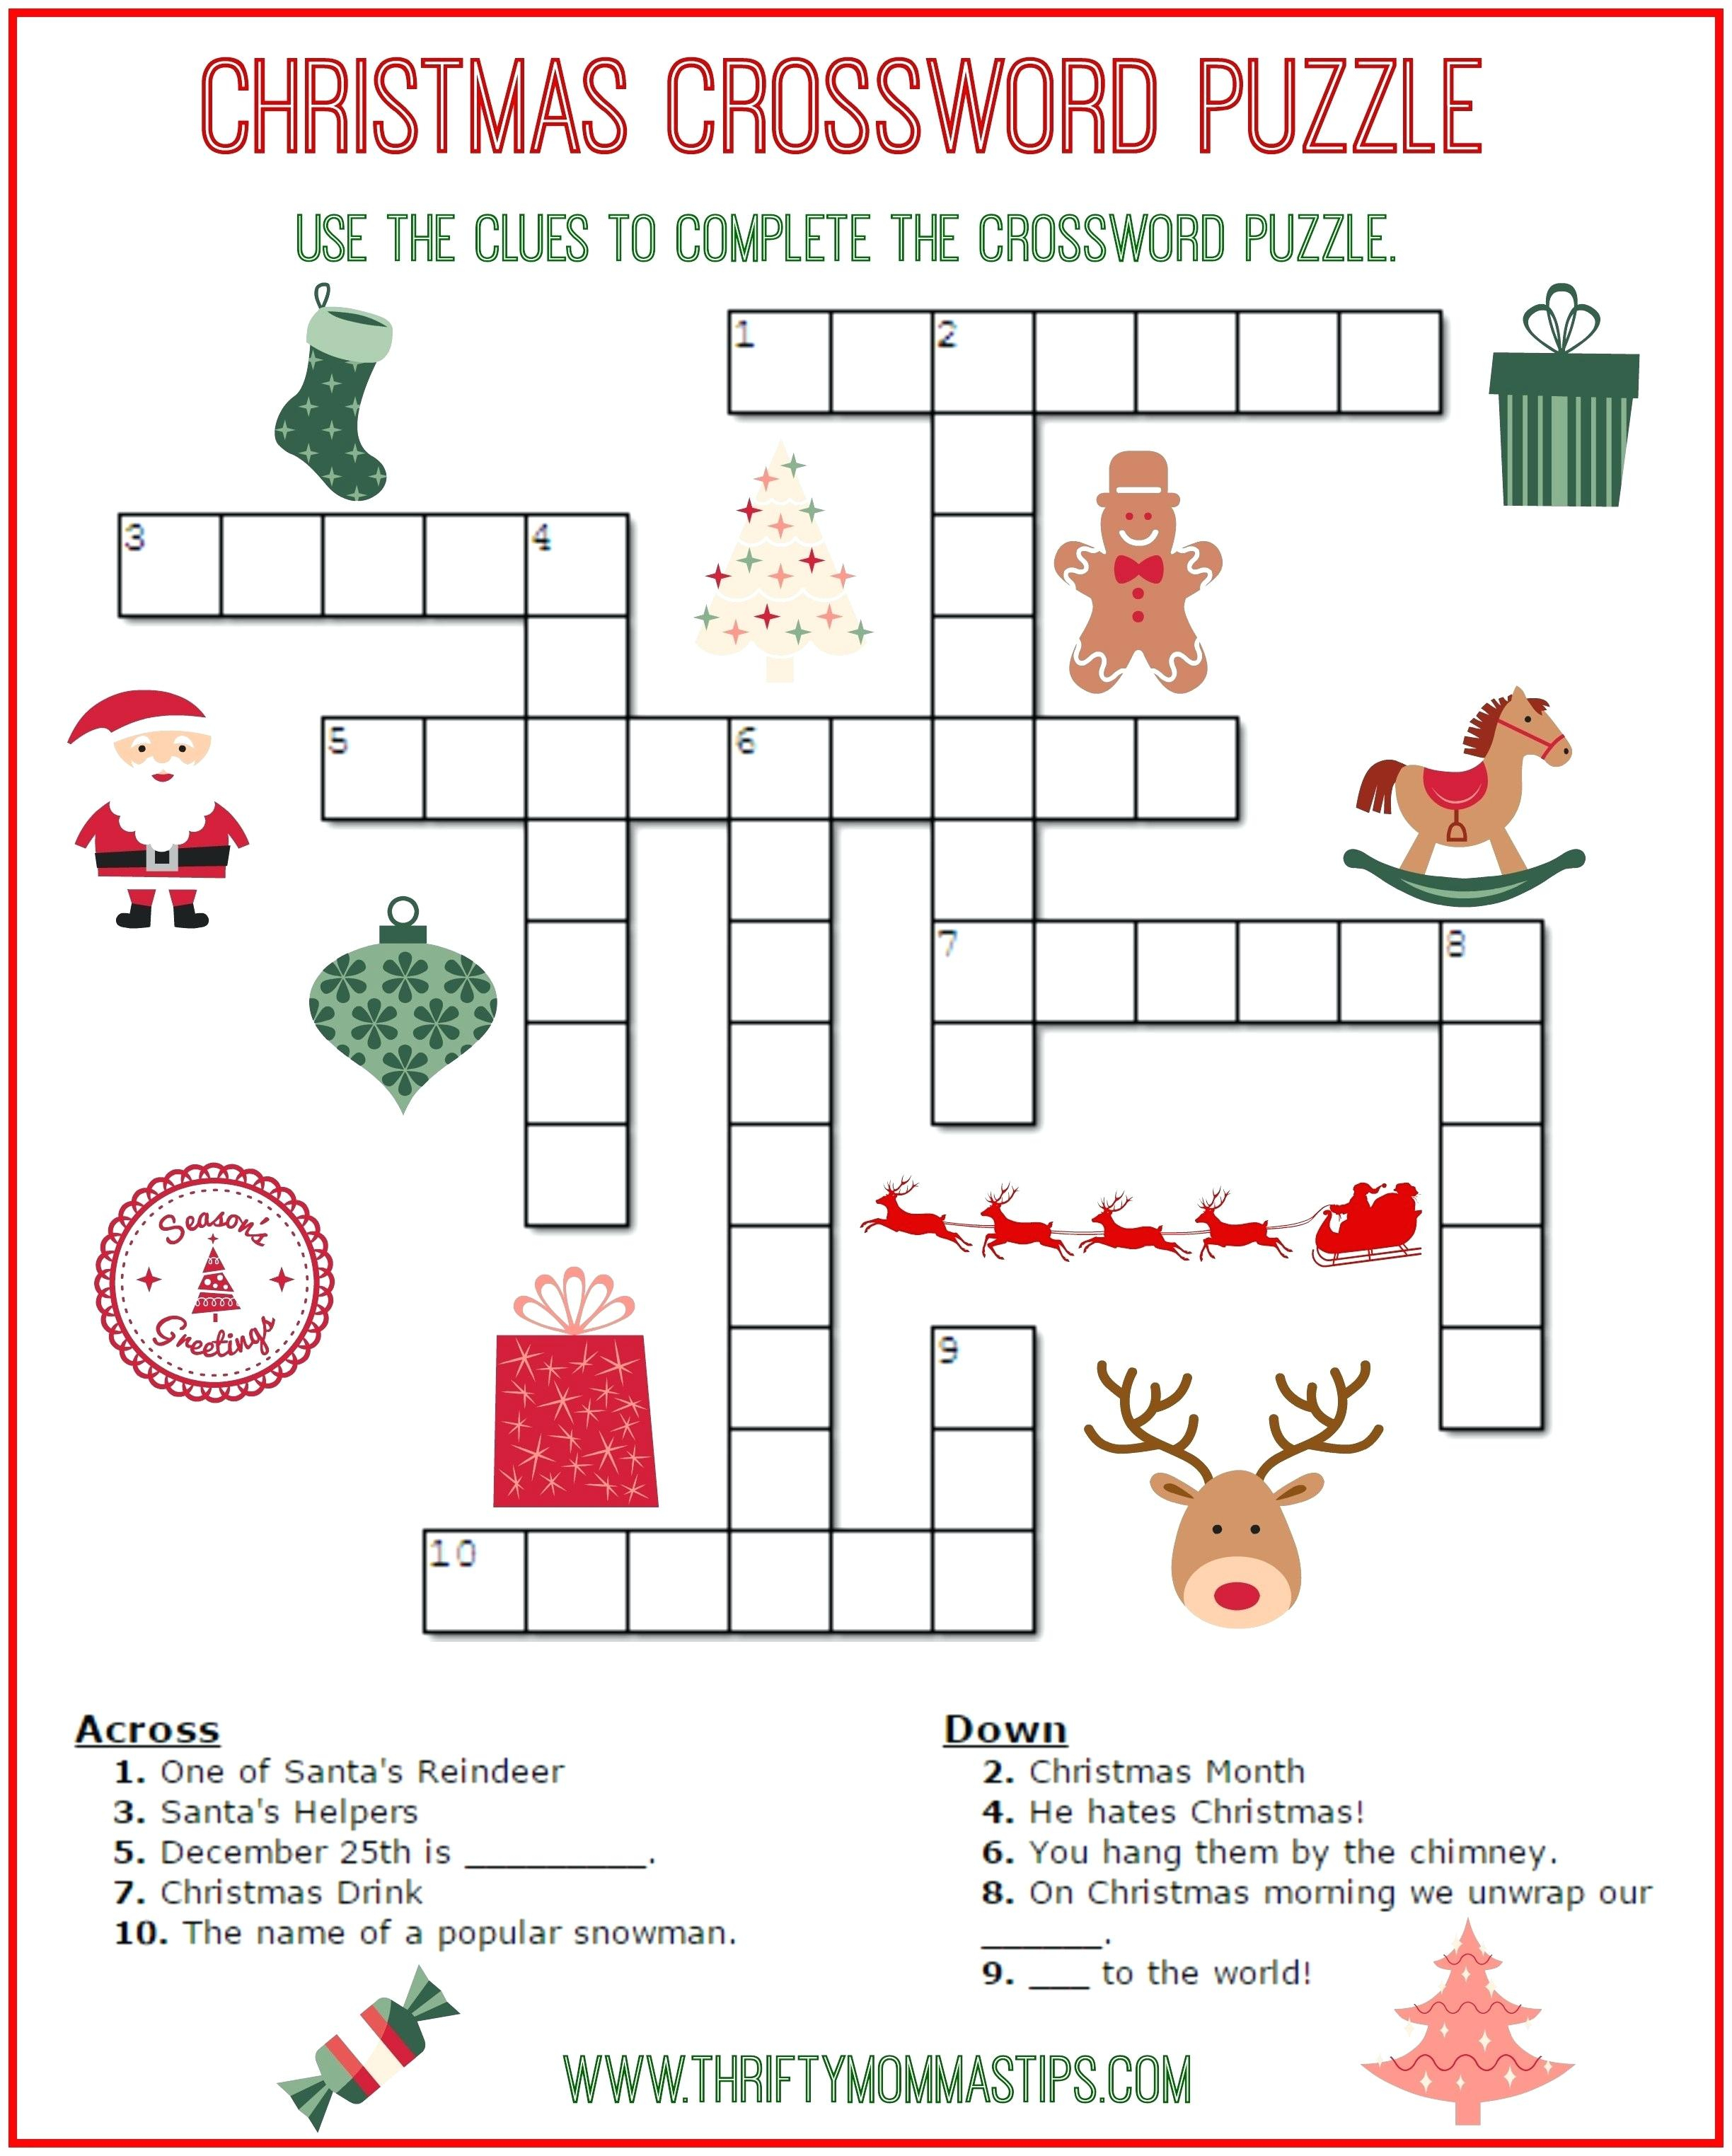 Free Printable Crossword Puzzles For Kids State Capitals Crossword - Printable Crossword Puzzles Elementary School